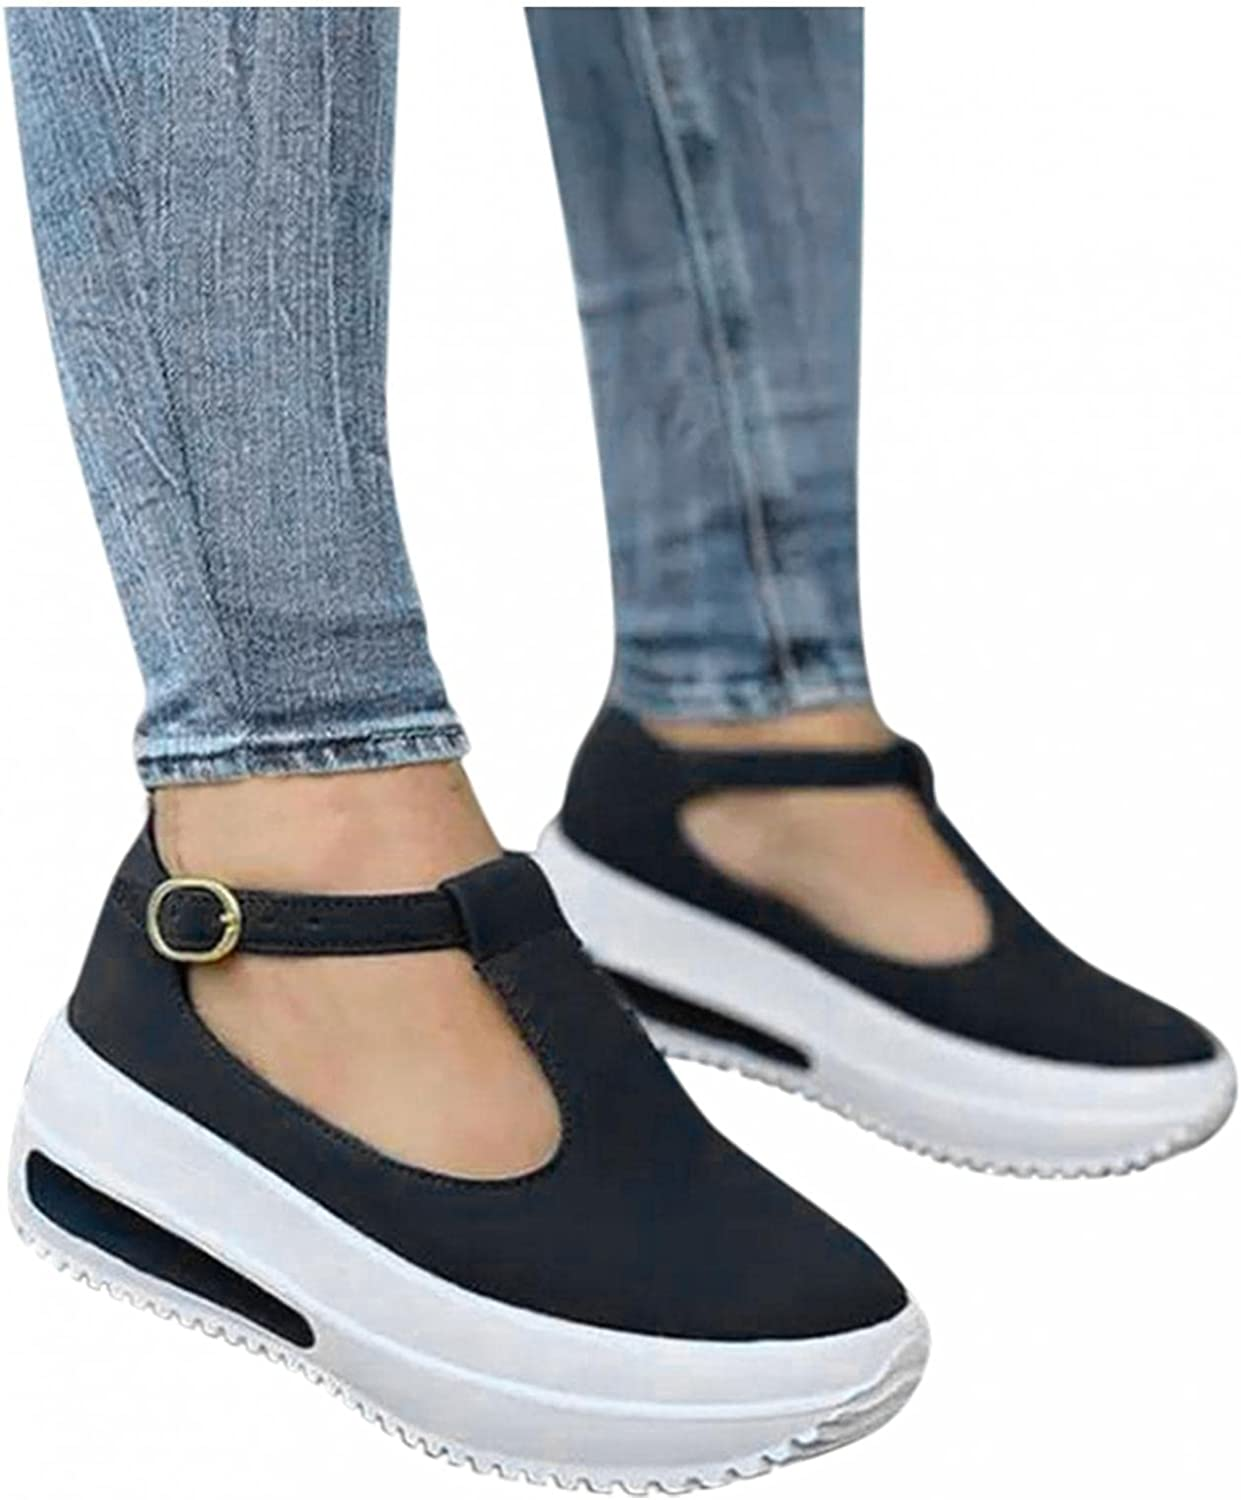 Hbeylia Platform Fashion Sneakers With Arch Support For Women Comfort Casual Chunky Bottom High Heels Slip On Loafers Low Top Walking Shoes Fall Dress Work Sandals Shoes For Ladies